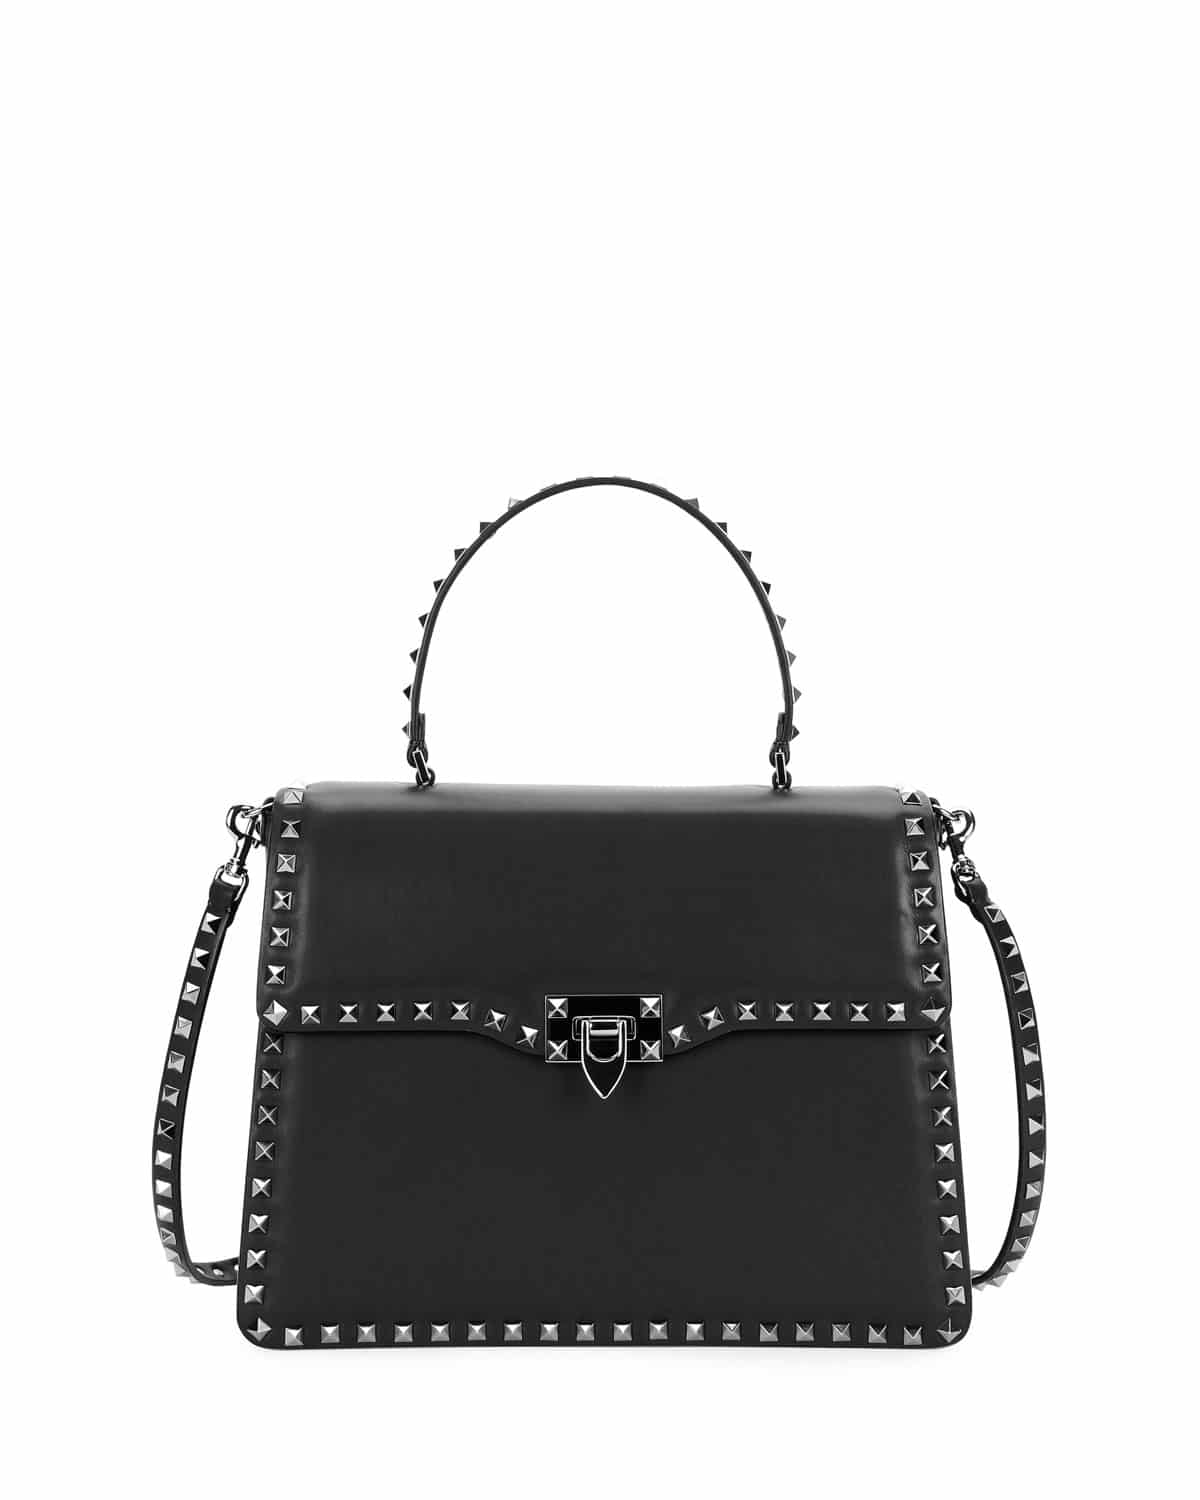 Valentino Resort 2017 Bag Collection